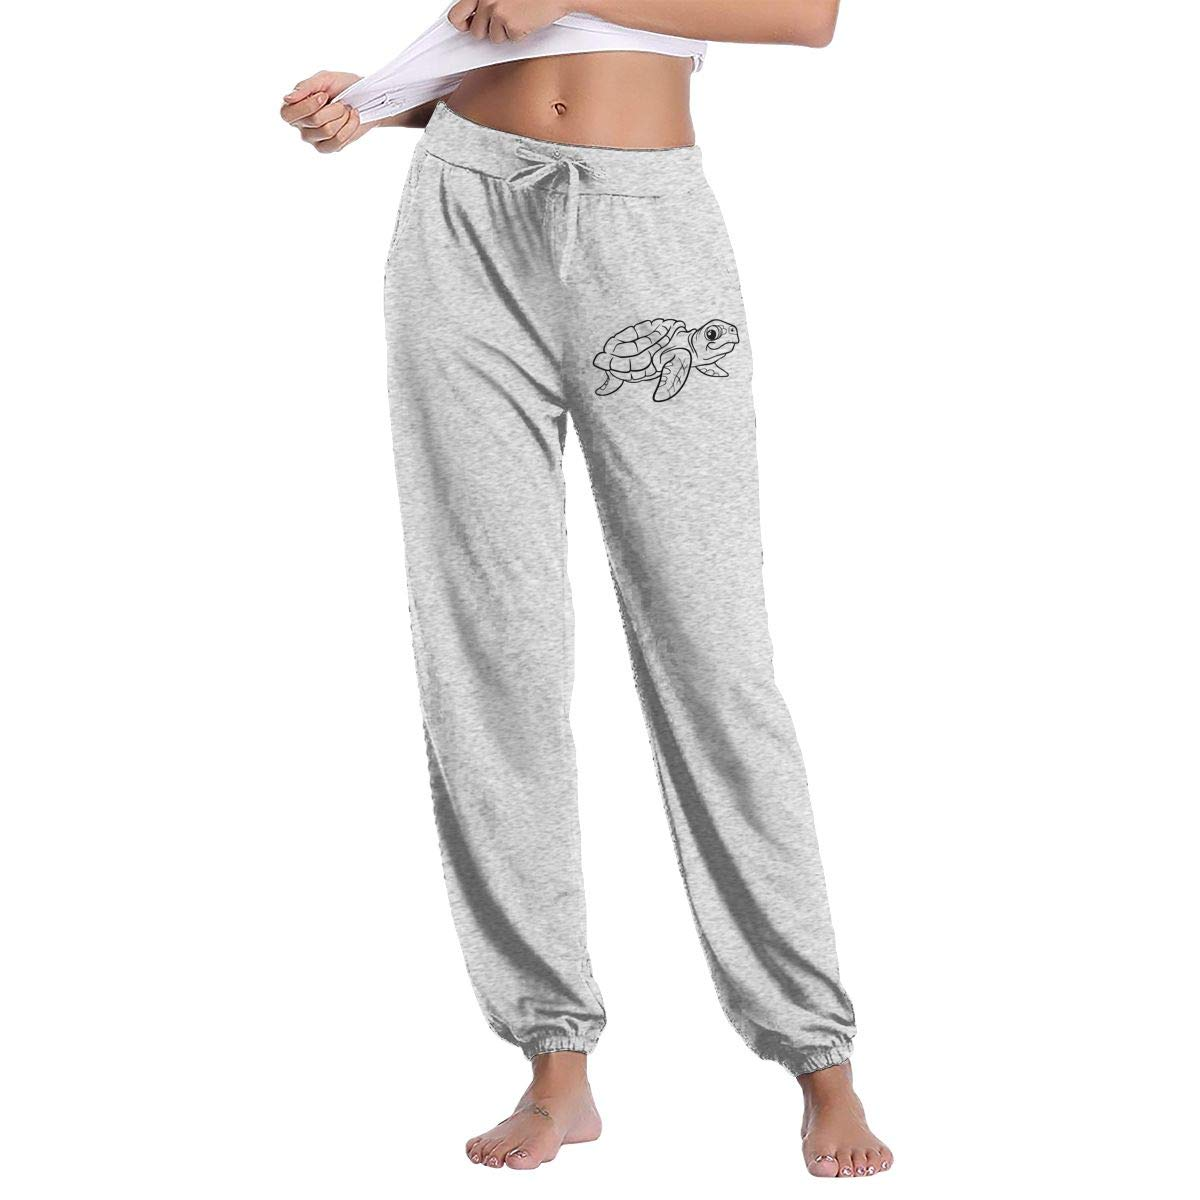 Women\'s Turtle Clipart Sweatpants with Pockets Comfy Pants.